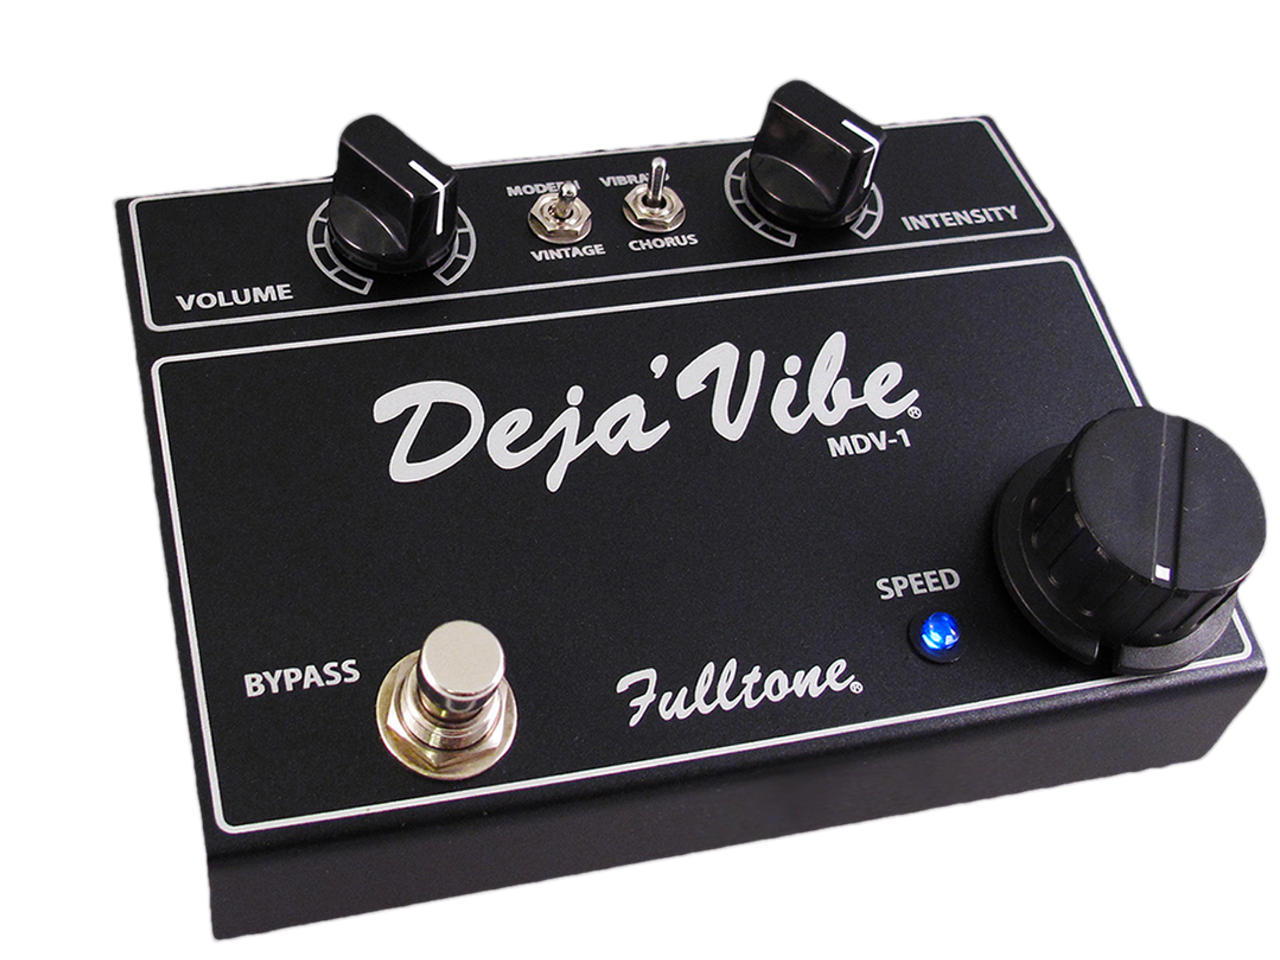 fulltone musical products inc pedals mini deja 39 vibe. Black Bedroom Furniture Sets. Home Design Ideas